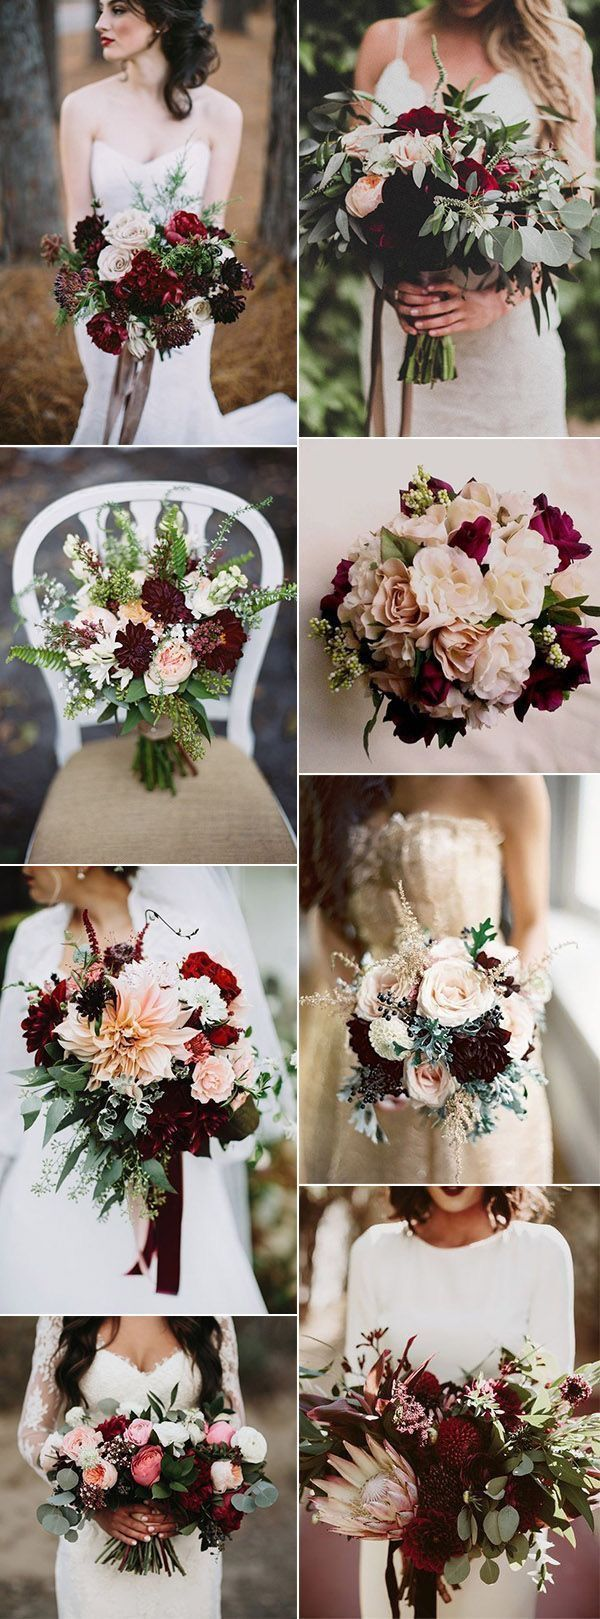 767 best September Wedding Ideas images on Pinterest